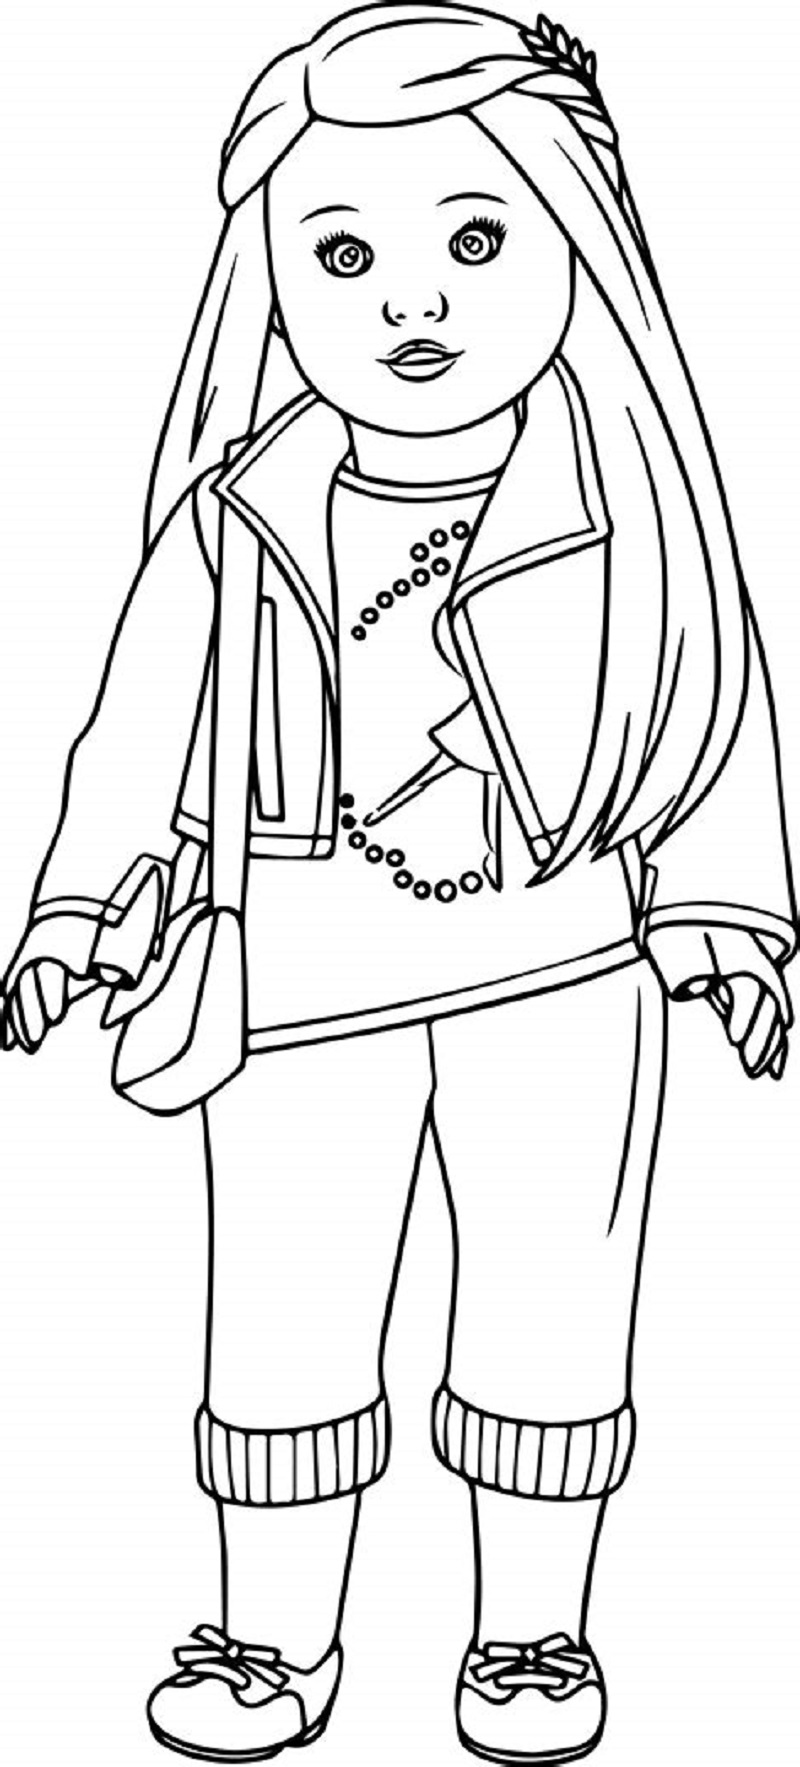 american girl doll coloring pages to print coloring pages of american girl dolls coloring pages for american coloring print doll pages girl to